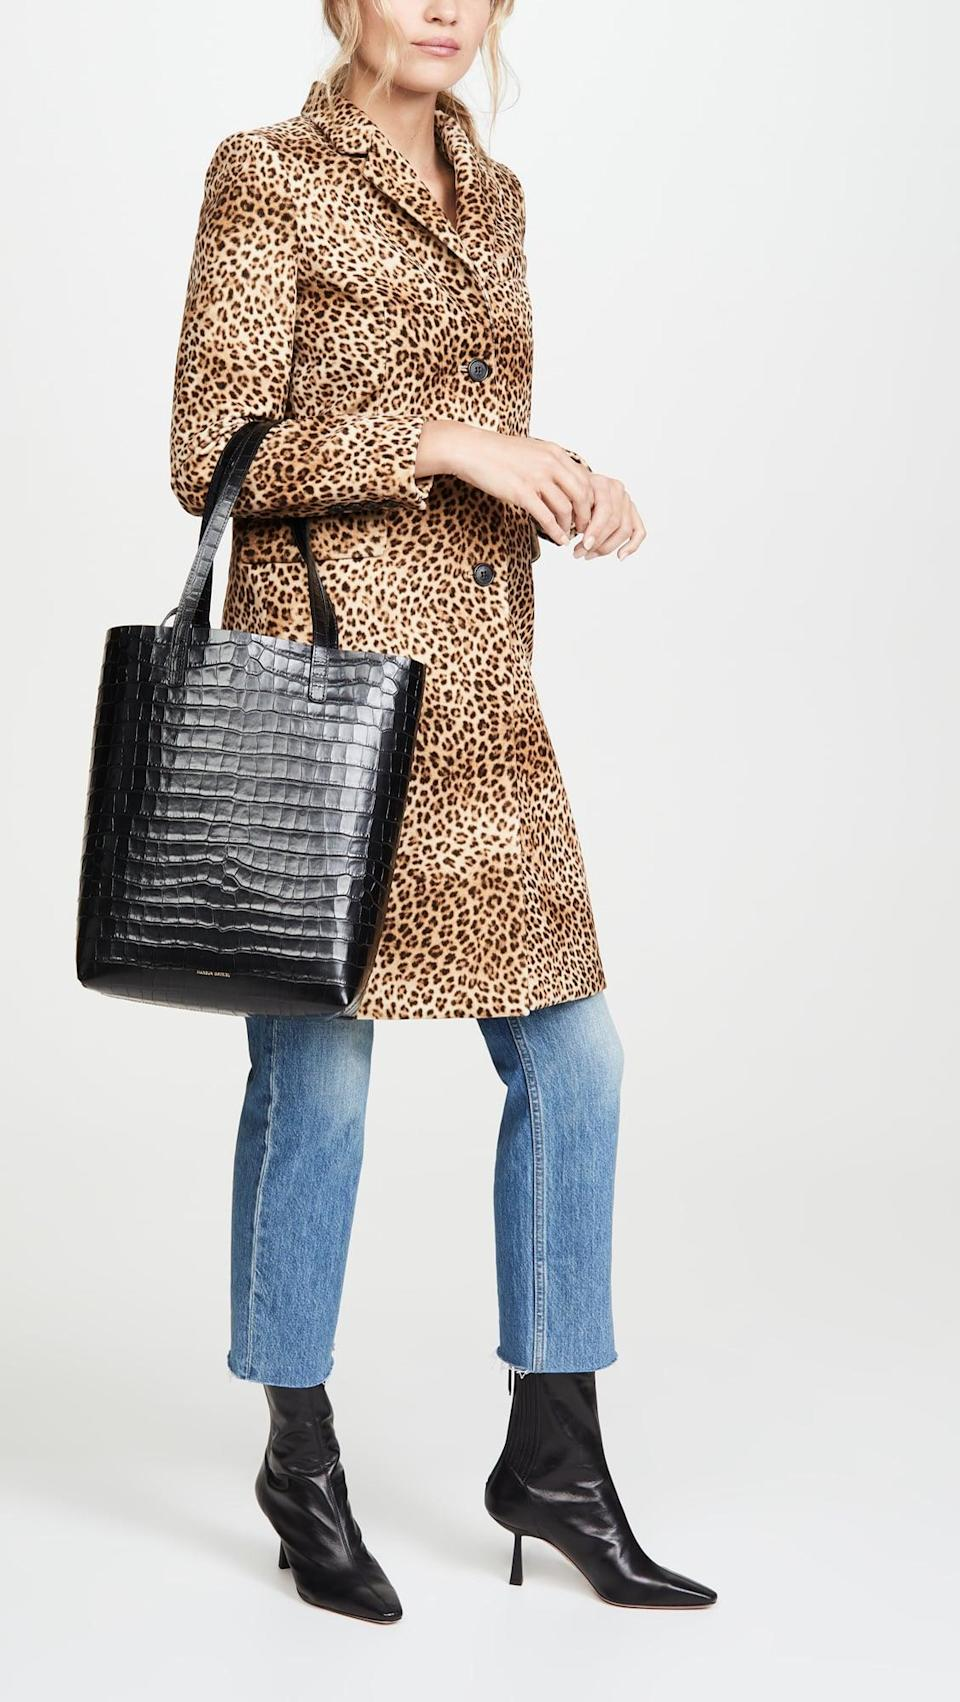 """<p>I've been dreaming of a new bag that I can take to work every day and that fits my laptop. This <a href=""""https://www.popsugar.com/buy/Mansur-Gavriel-Everyday-Tote-523295?p_name=Mansur%20Gavriel%20Everyday%20Tote&retailer=shopbop.com&pid=523295&price=695&evar1=fab%3Aus&evar9=45509008&evar98=https%3A%2F%2Fwww.popsugar.com%2Ffashion%2Fphoto-gallery%2F45509008%2Fimage%2F46947617%2FMansur-Gavriel-Everyday-Tote&list1=shopping%2Csales%2Cblack%20friday%2Csale%20shopping%2Cblack%20friday%20sales&prop13=mobile&pdata=1"""" rel=""""nofollow noopener"""" class=""""link rapid-noclick-resp"""" target=""""_blank"""" data-ylk=""""slk:Mansur Gavriel Everyday Tote"""">Mansur Gavriel Everyday Tote</a> ($695) is at the top of my wishlist. Shopbop is having up to 25 percent off full-price items, now's the perfect chance to buy.</p>"""